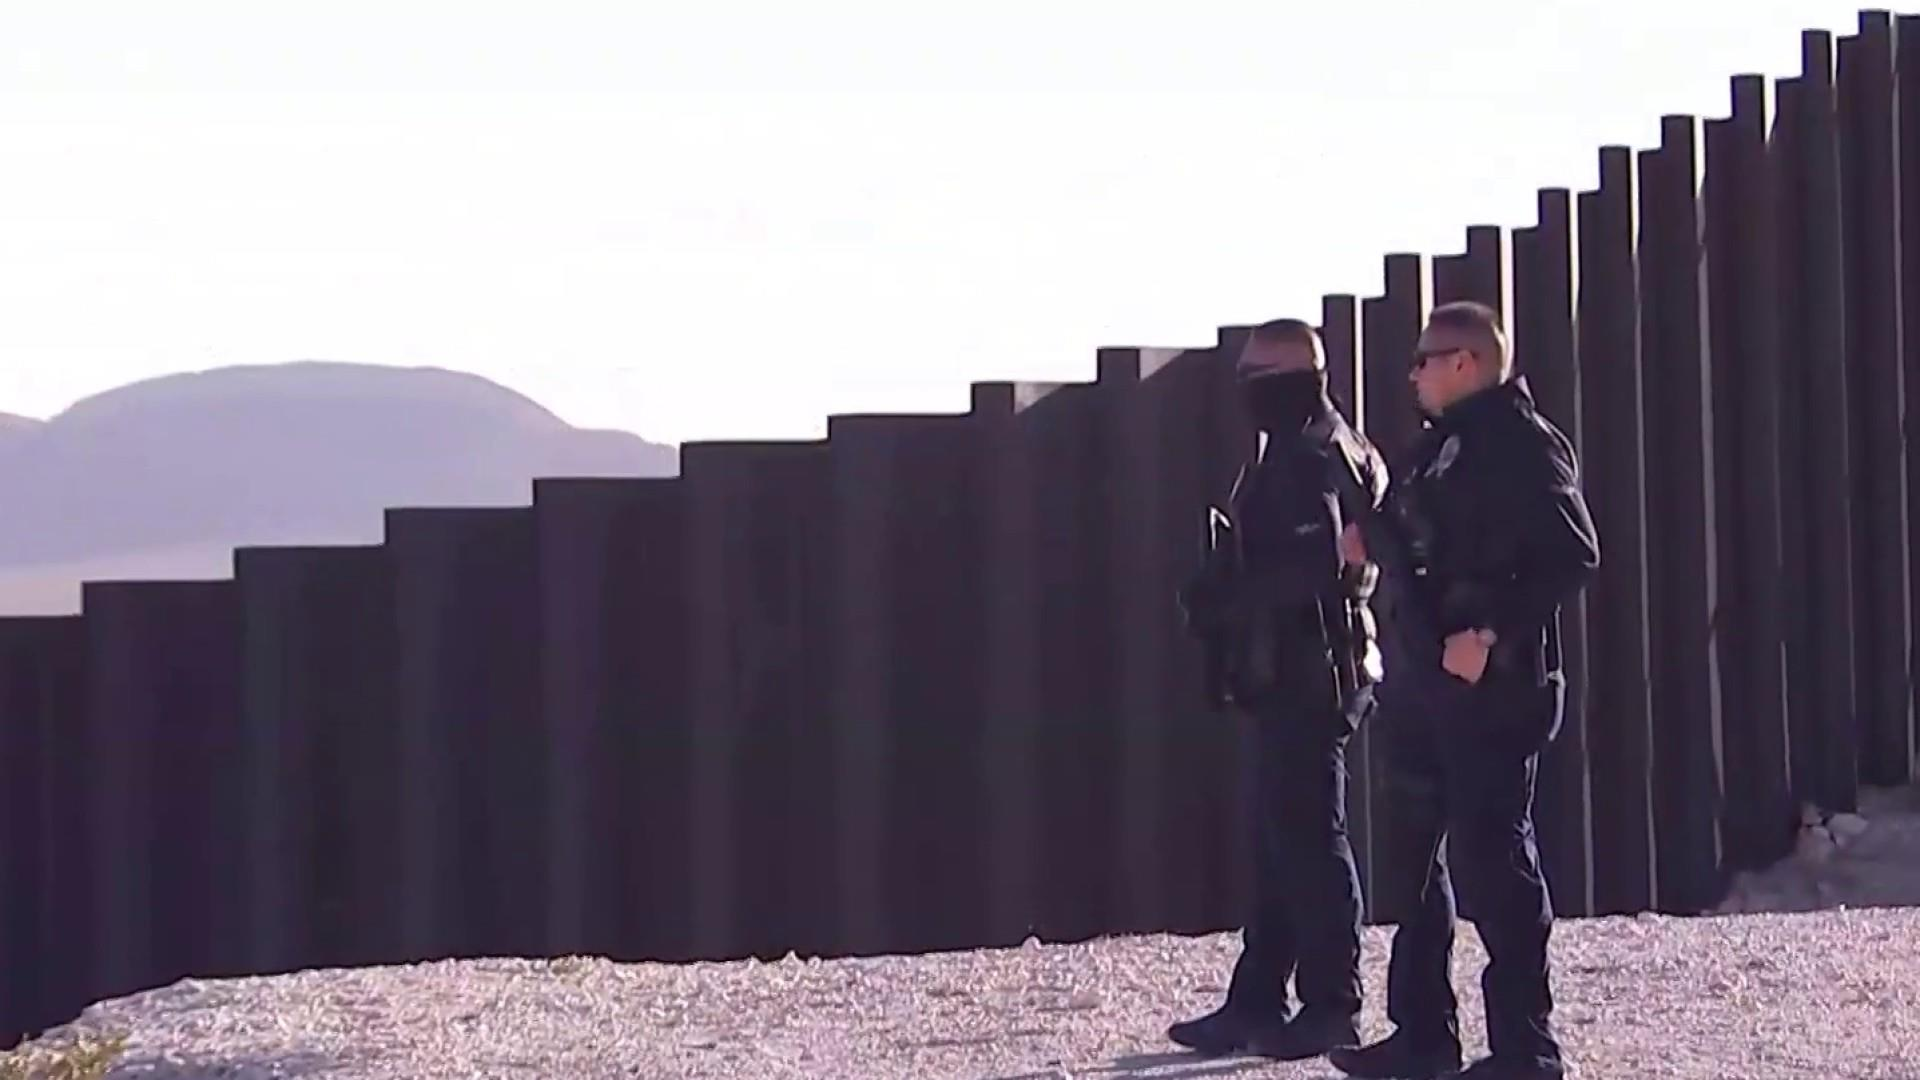 Sen. Schumer: Some diverted border wall funds meant for West Point